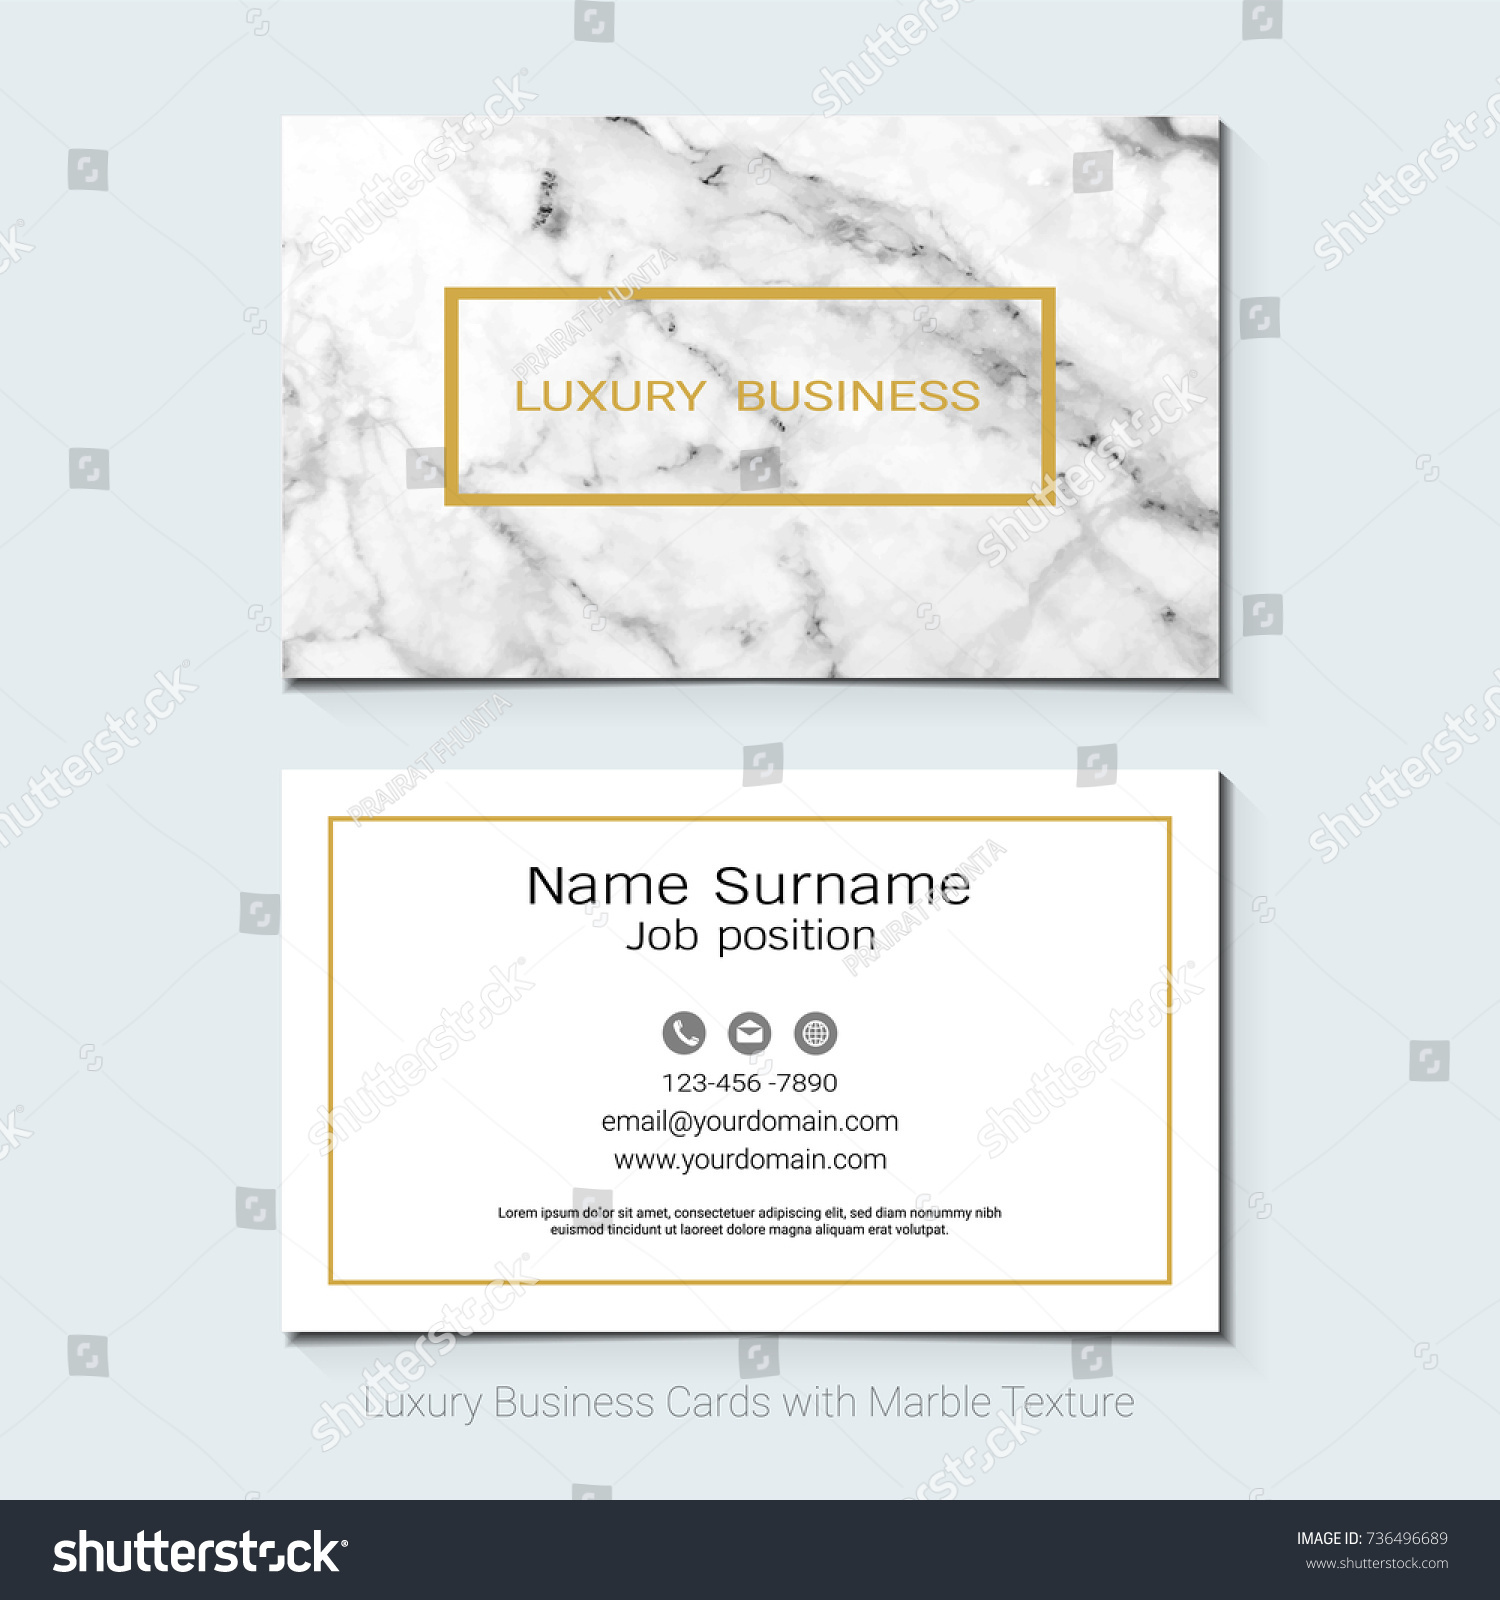 Luxury Business Cards Vector Template Banner Stock Vector 736496689 ...